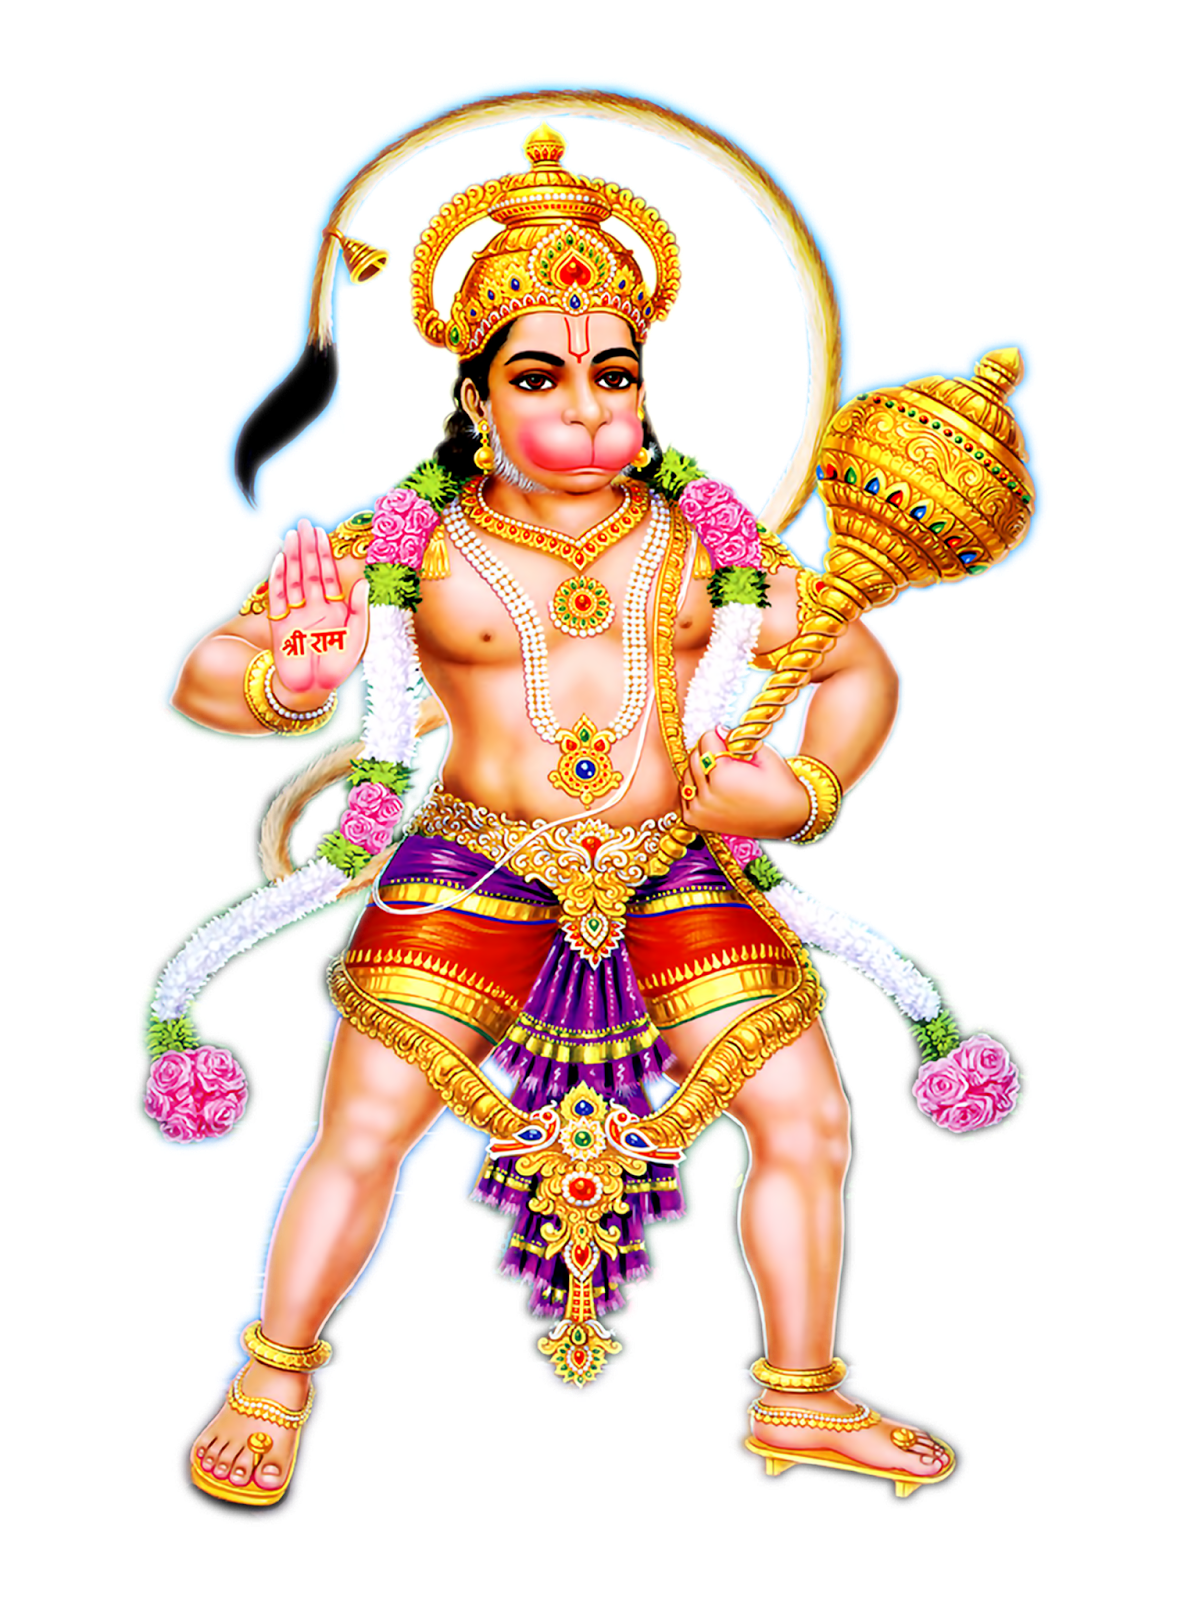 Hanuman PNG Transparent Image - Hindu God PNG HD